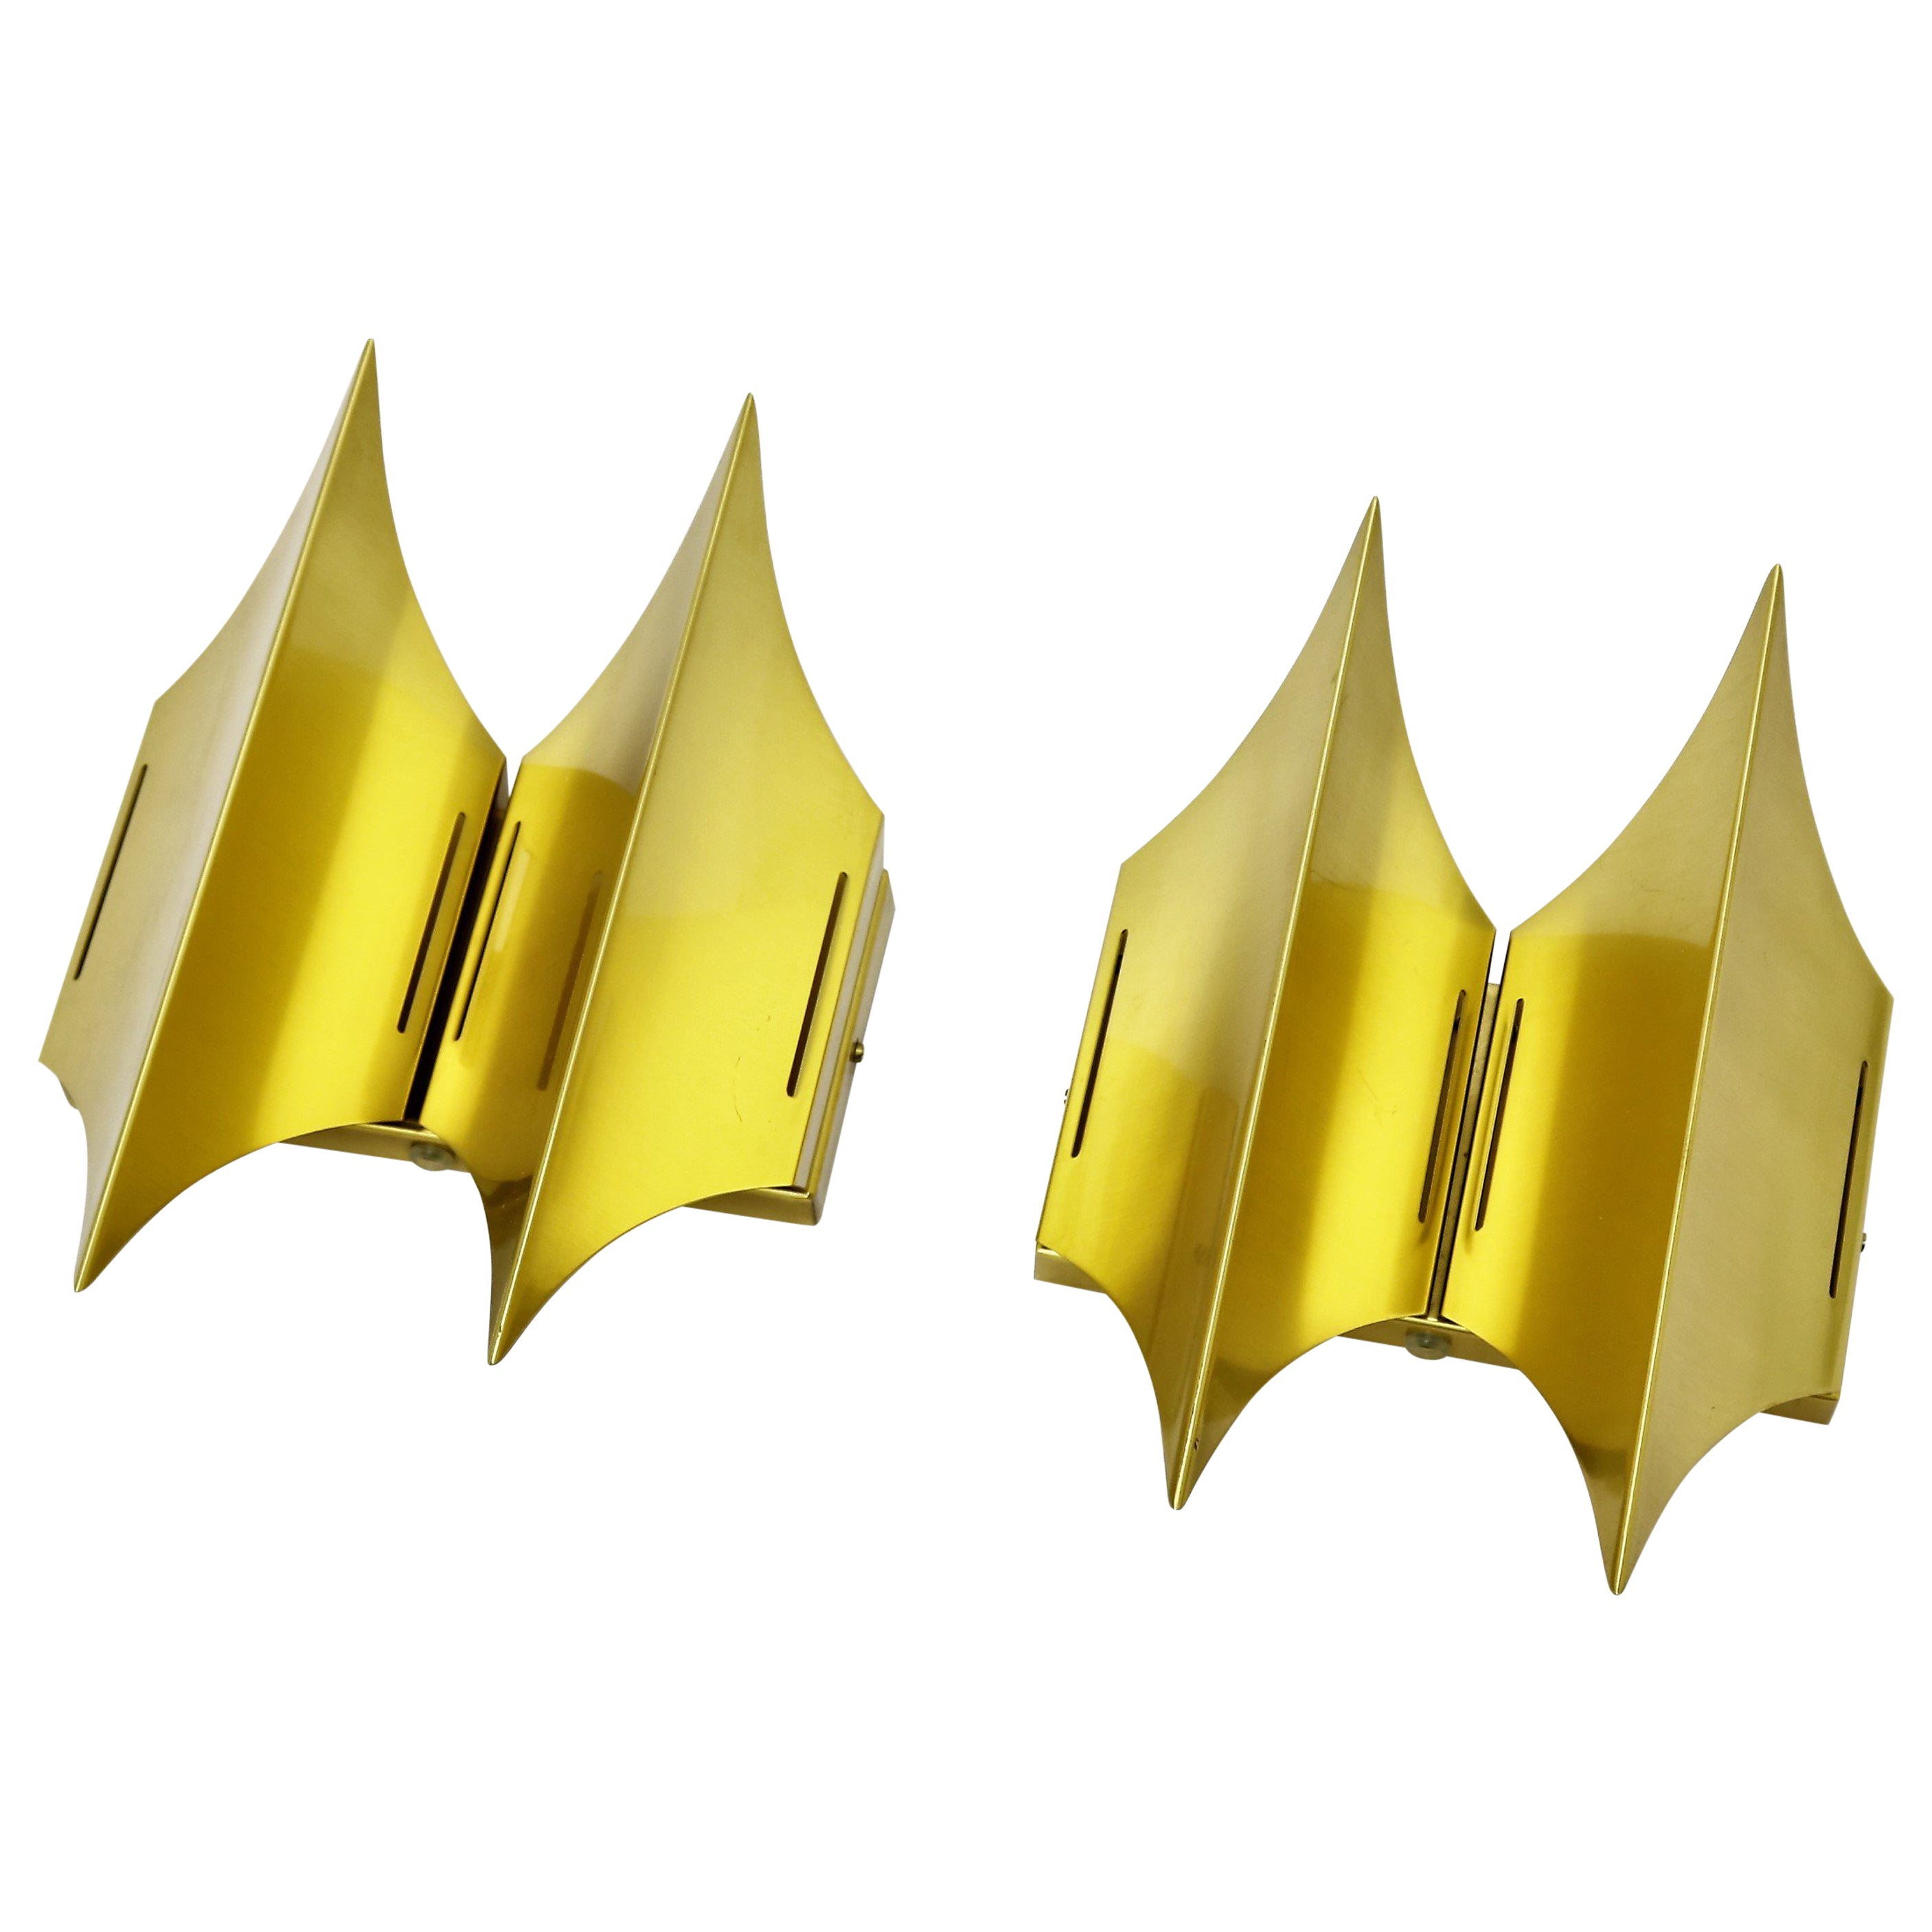 Scandinavian Modern Brass Wall Sconces from the 1960s by LYFA, model Gothic II